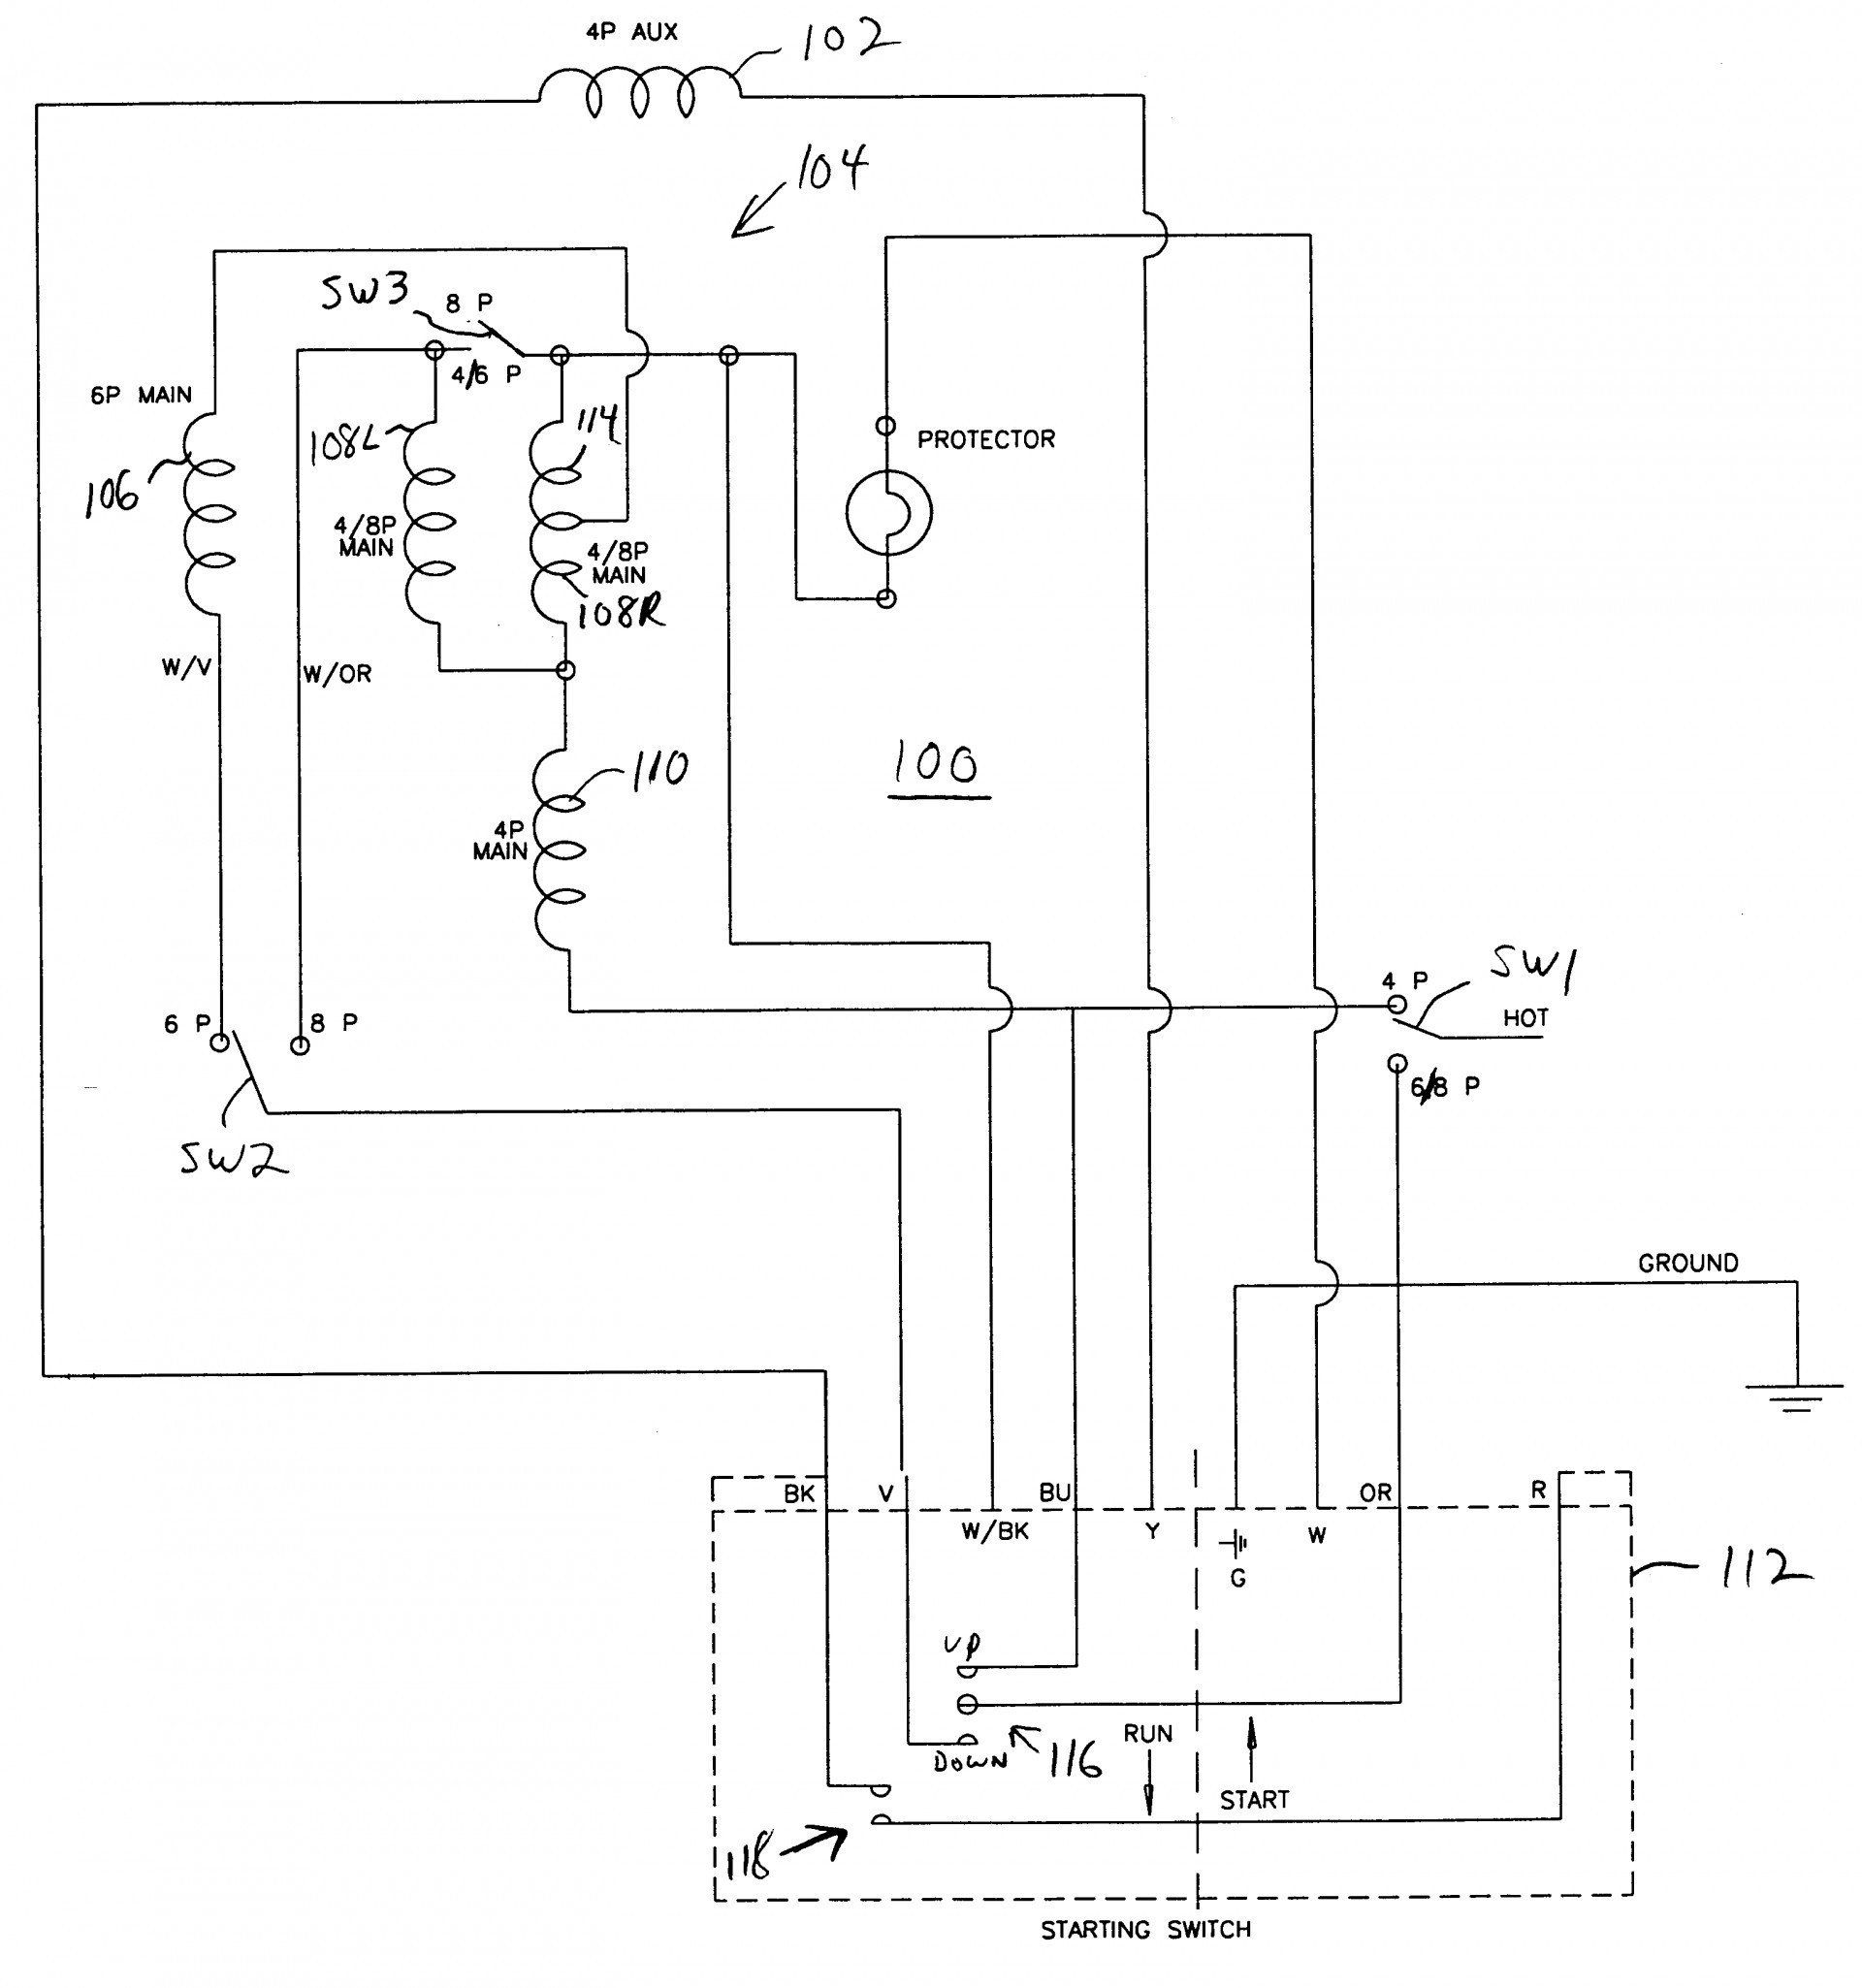 Doerr Motor Wiring Diagram - Wiring And Diagram Schematics - Doerr Electric Motor Lr22132 Wiring Diagram